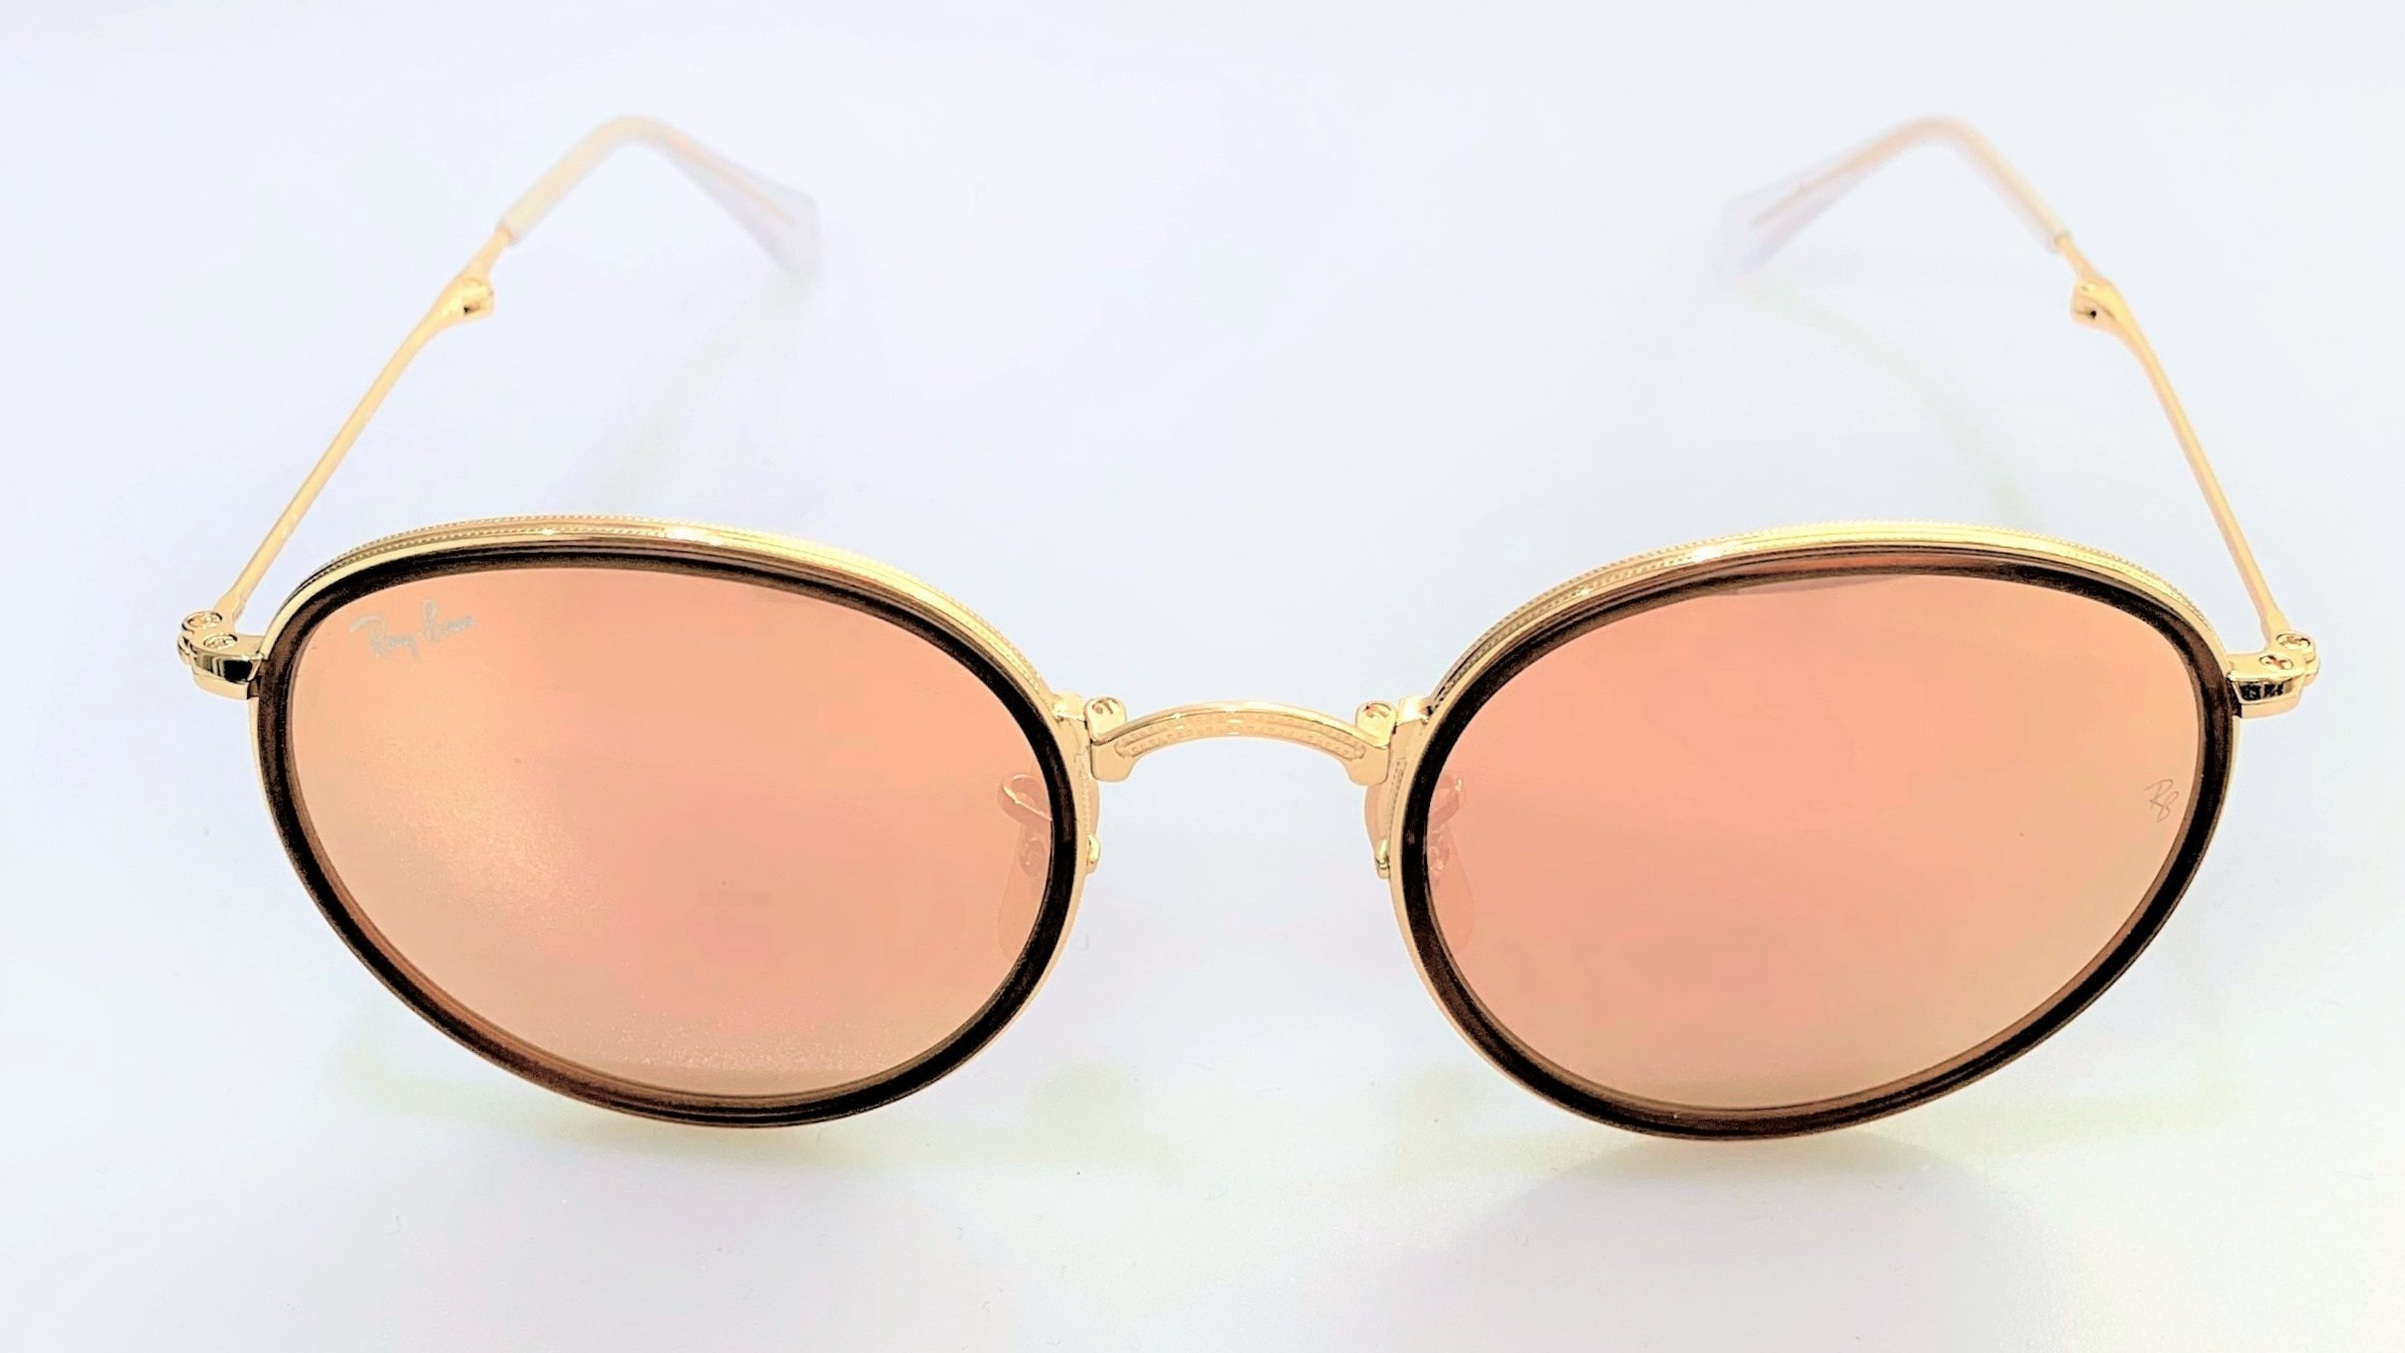 Rosy in Ray-Ban - These rose gold Ray-Ban sunglasses not only look great but are super practical too as they fold up.. perfect to pop in your pocket or bag when the sun sets.